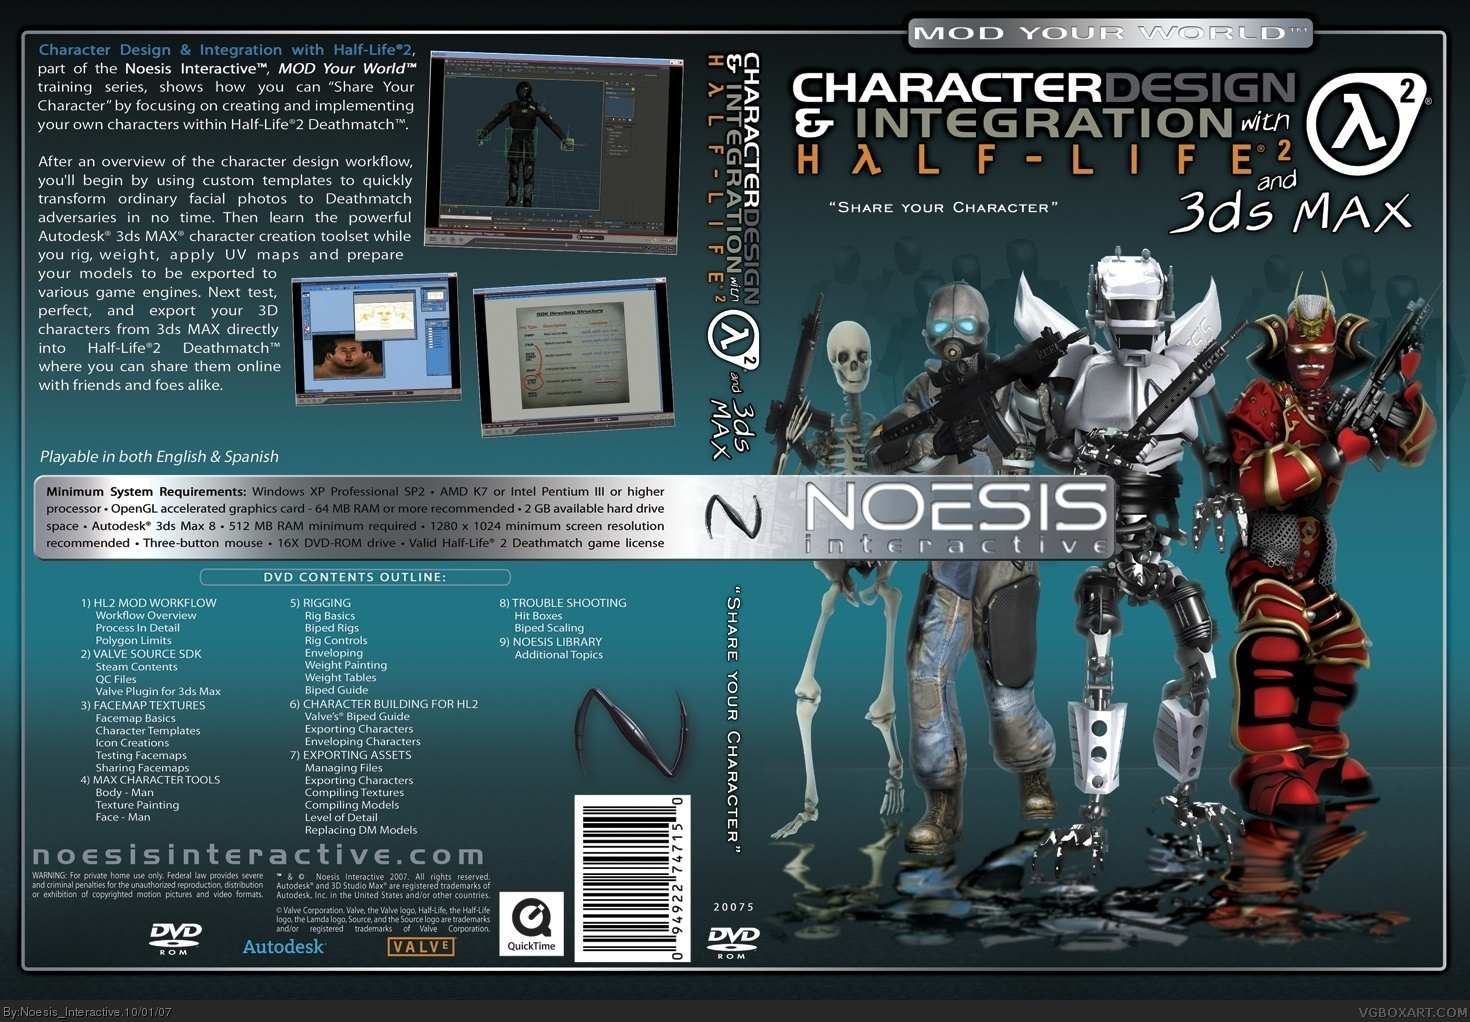 Noesis Interactive-Character Design with 3DS MAX box cover